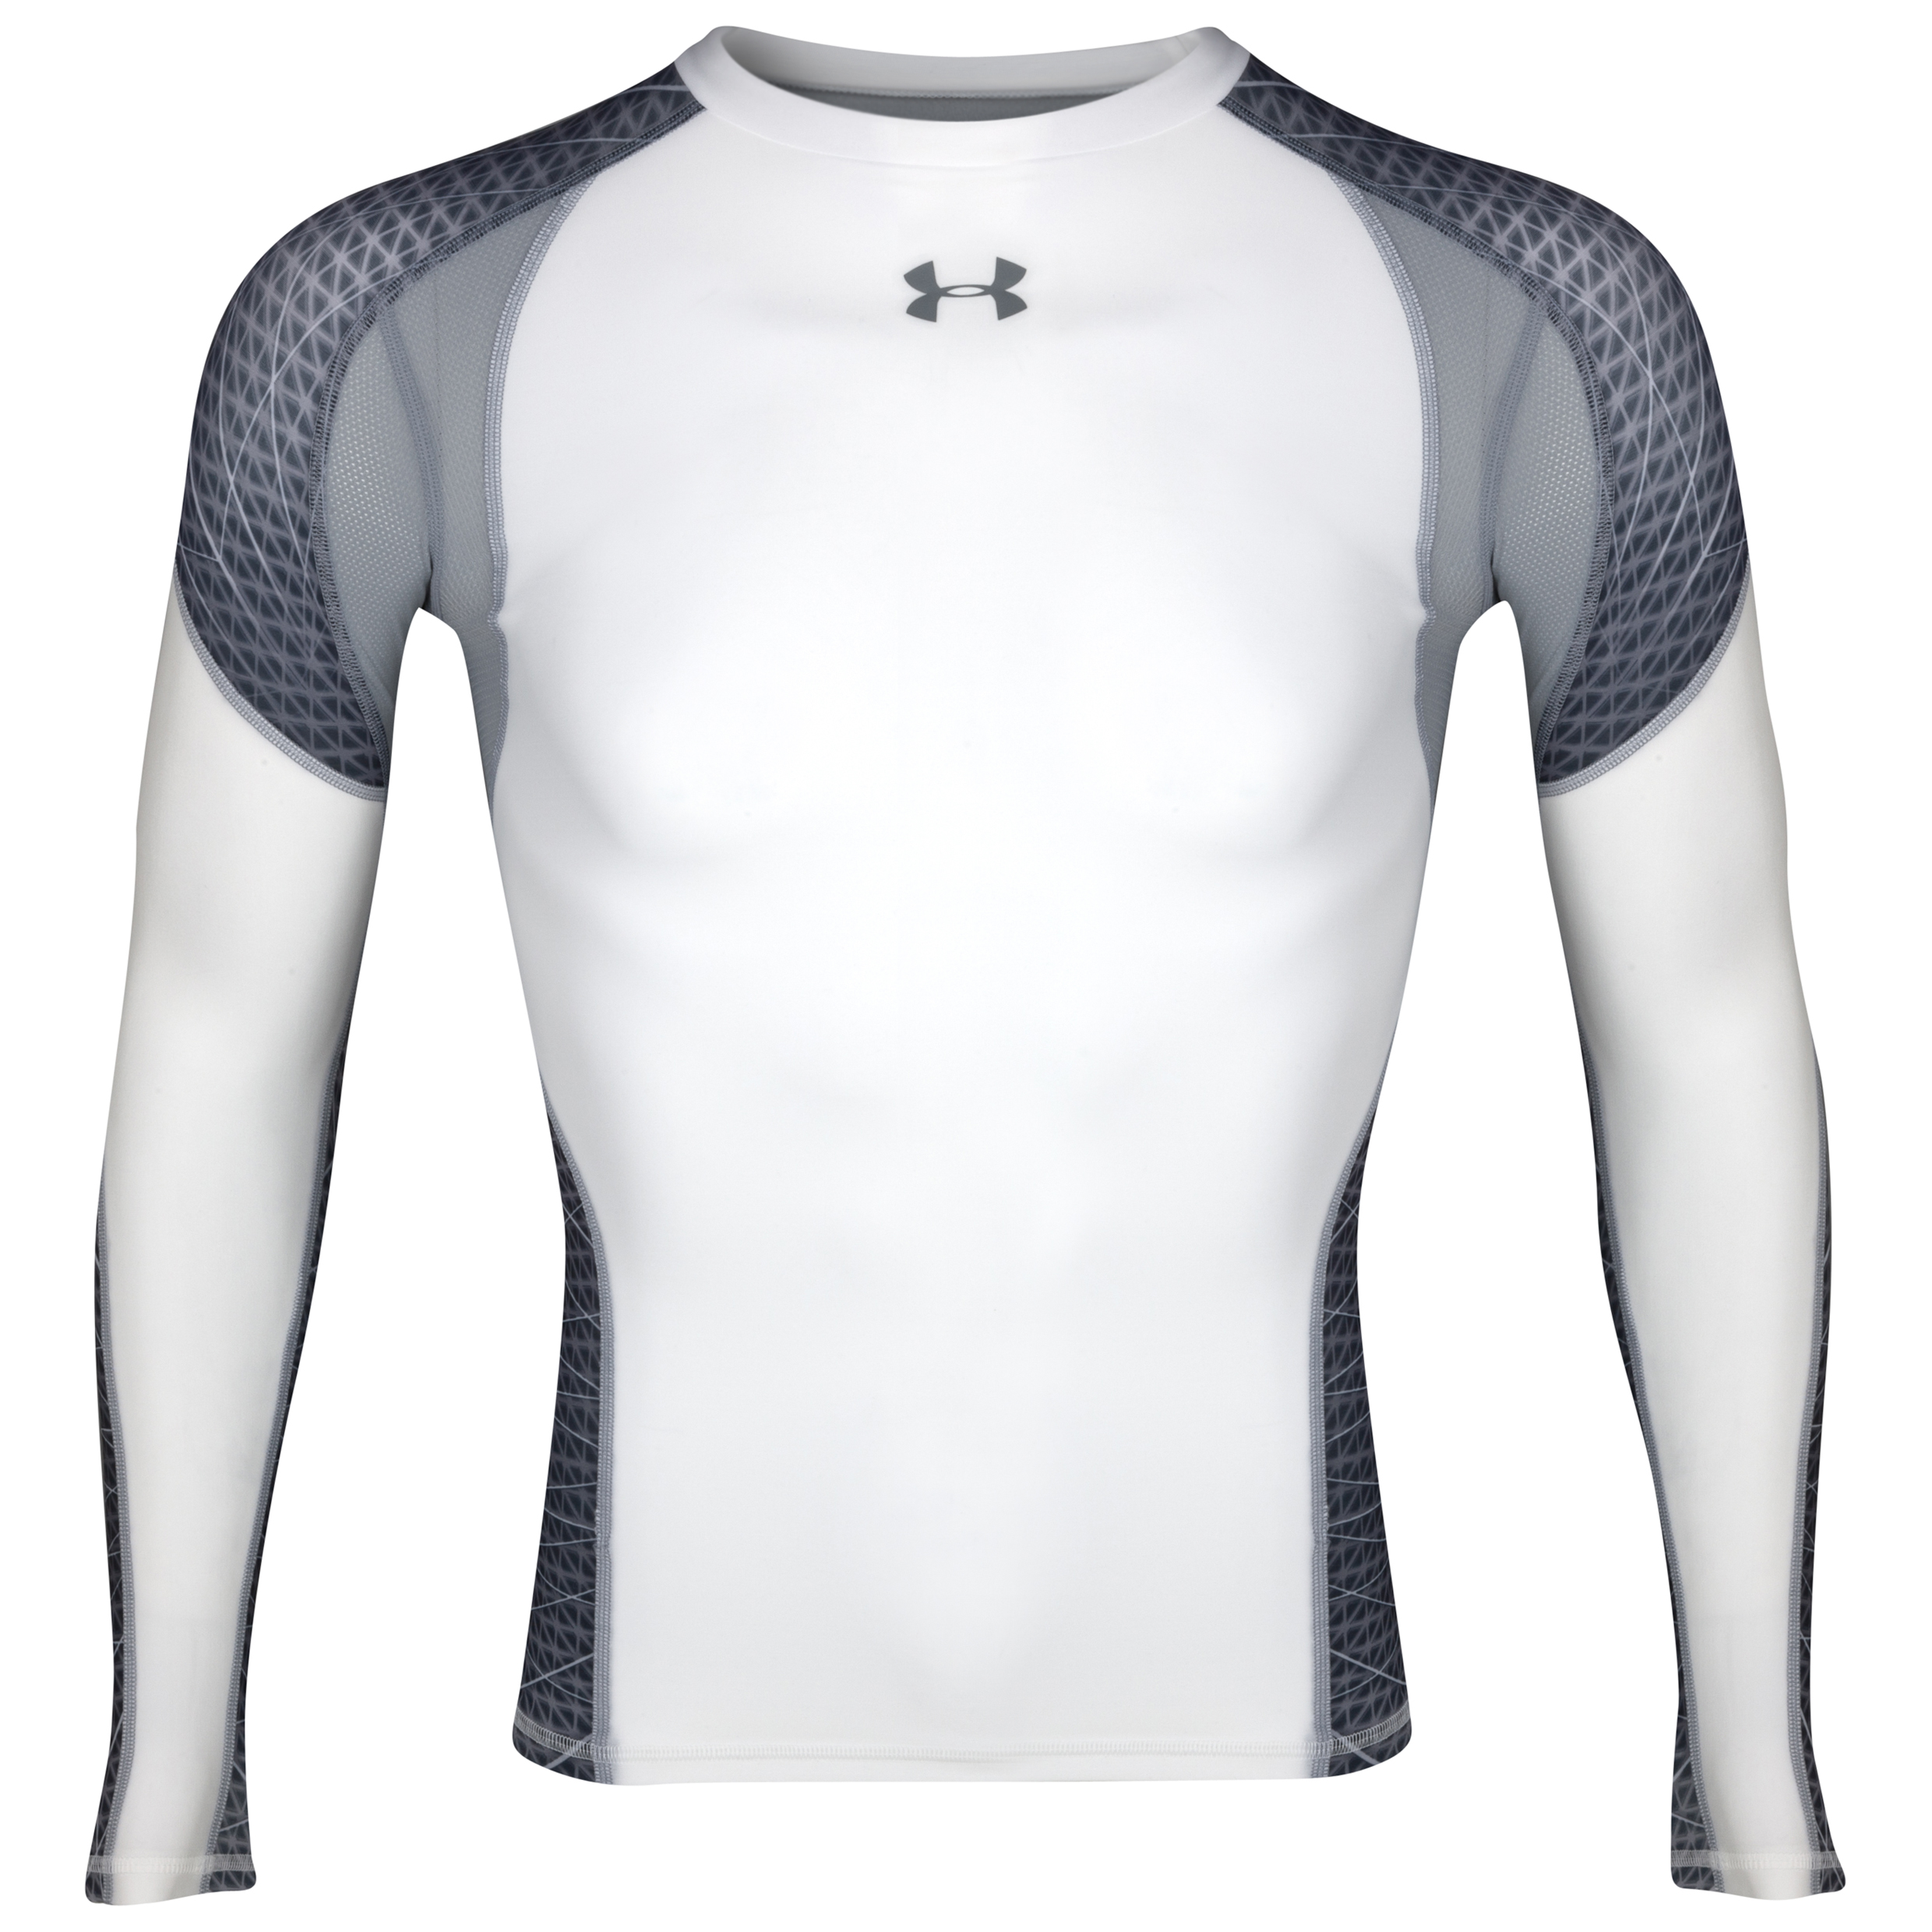 Under Armour Warp Speed Top - White/Steel - Long Sleeve